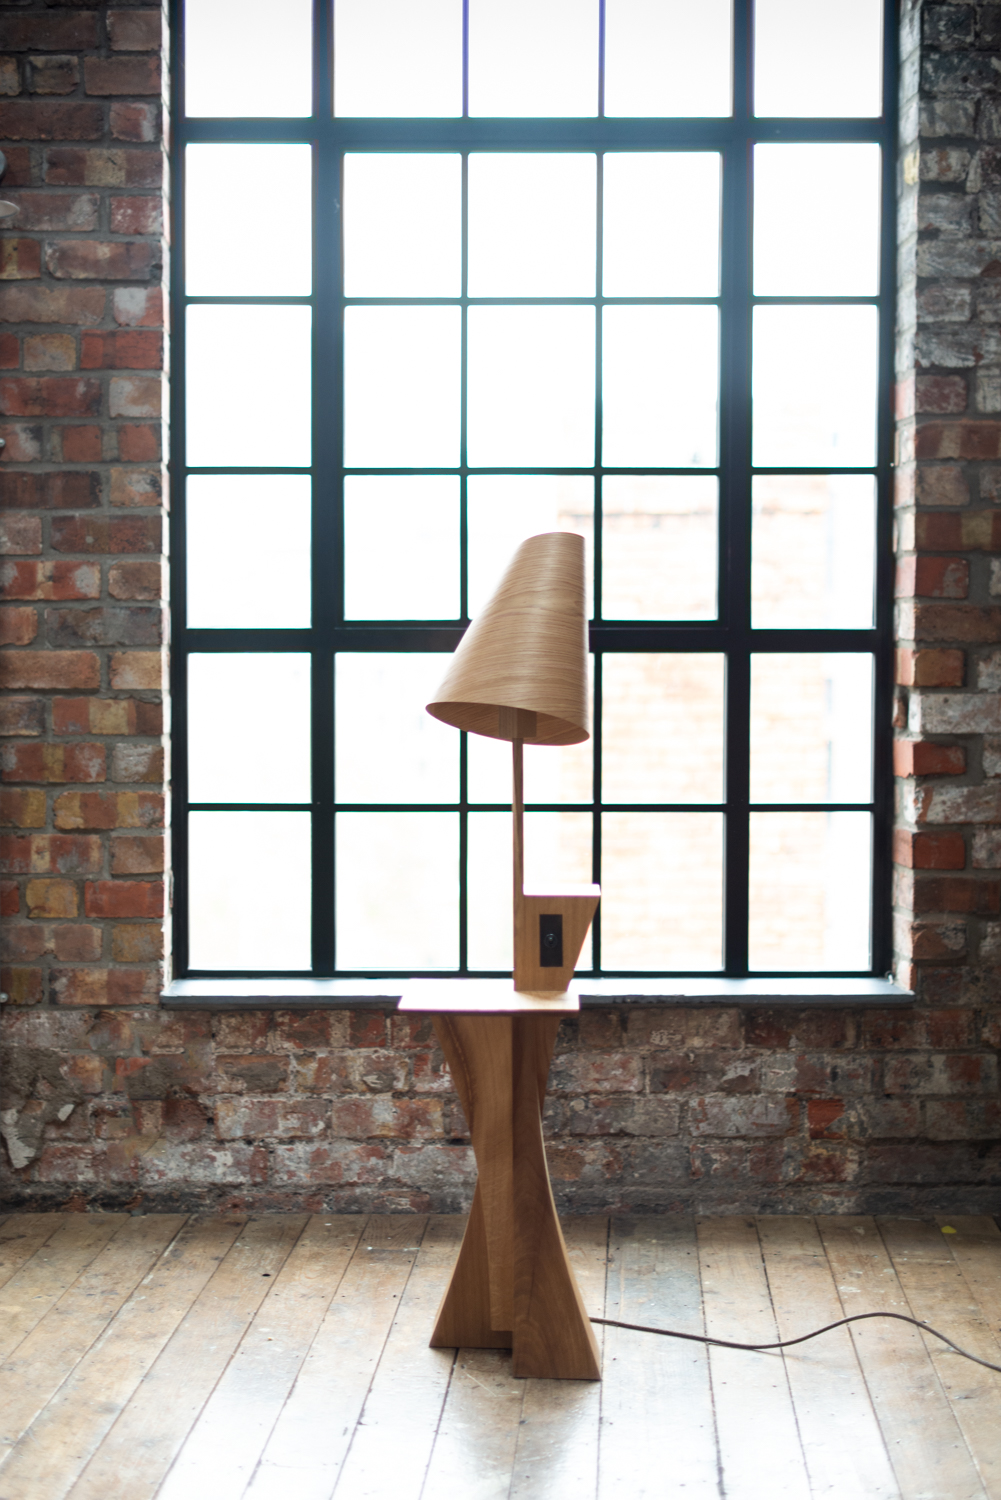 Photoshoot & location The Forge_Bristol_Furniture Maker_Anselm_Fraser-2.jpg